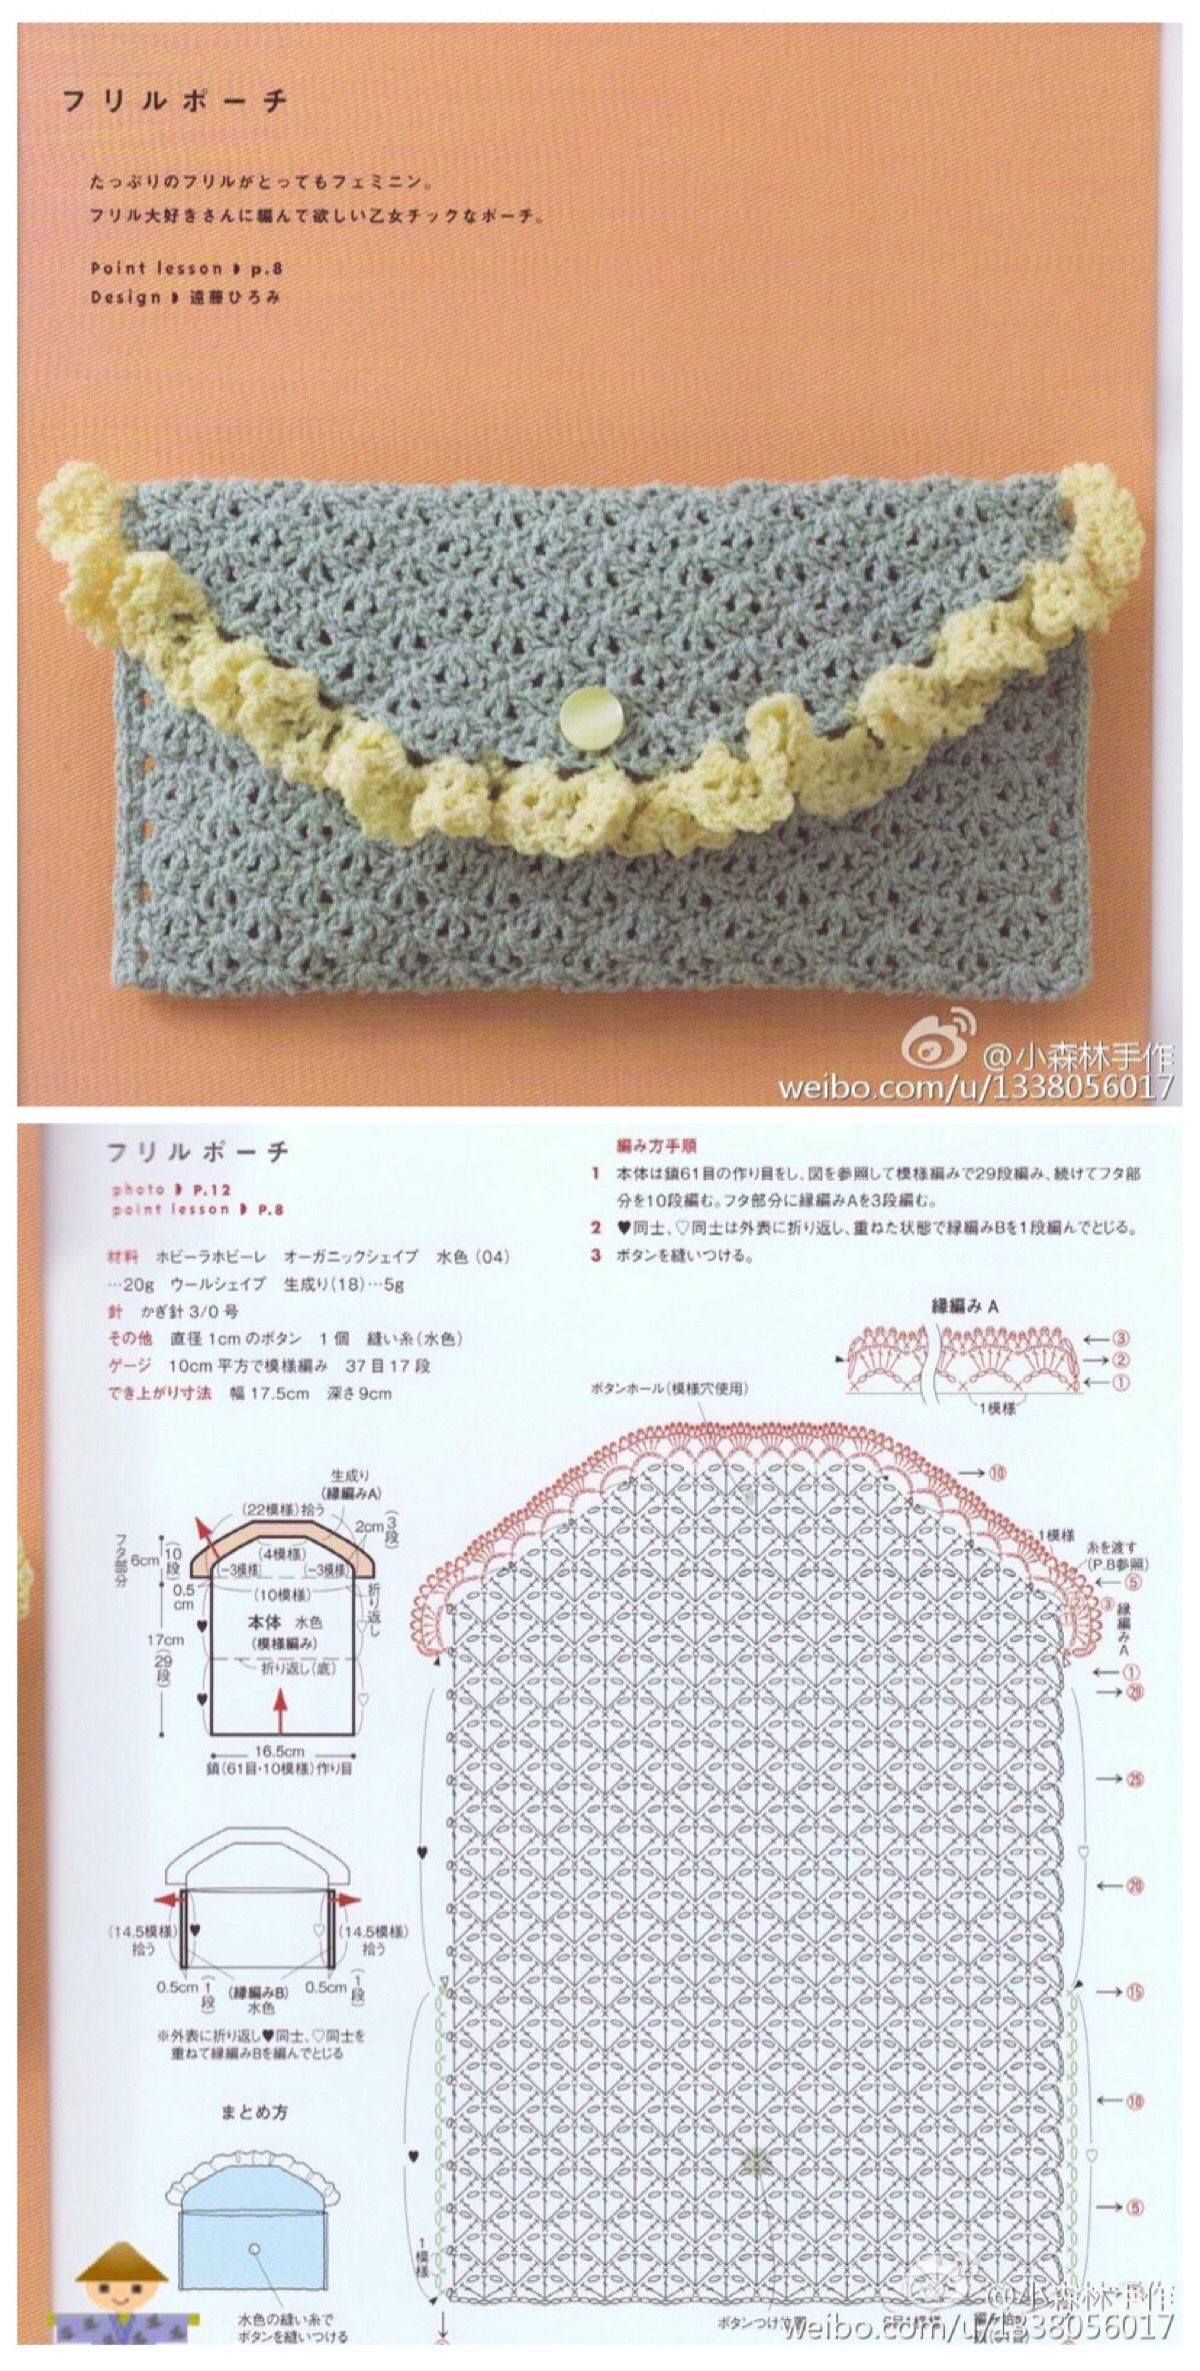 Crochet diagram for cute clutch purse bolsos crochet y otros crochet diagram for cute clutch purse bankloansurffo Gallery